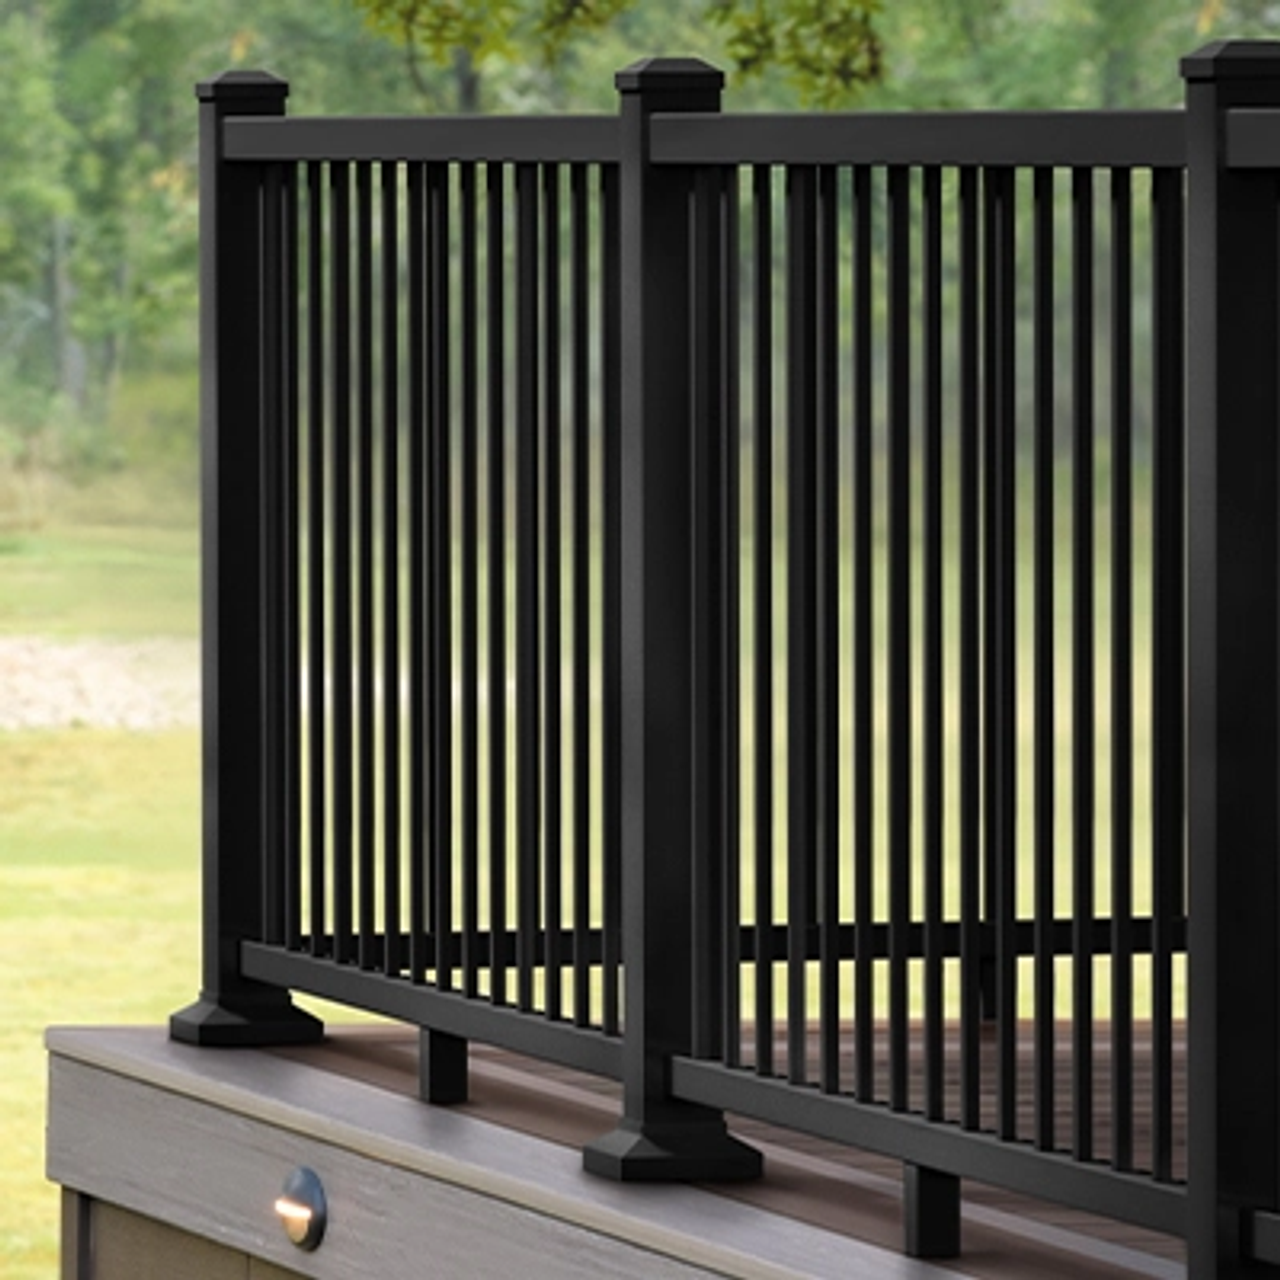 TimberTech Impressions Express with Modern Top Rail